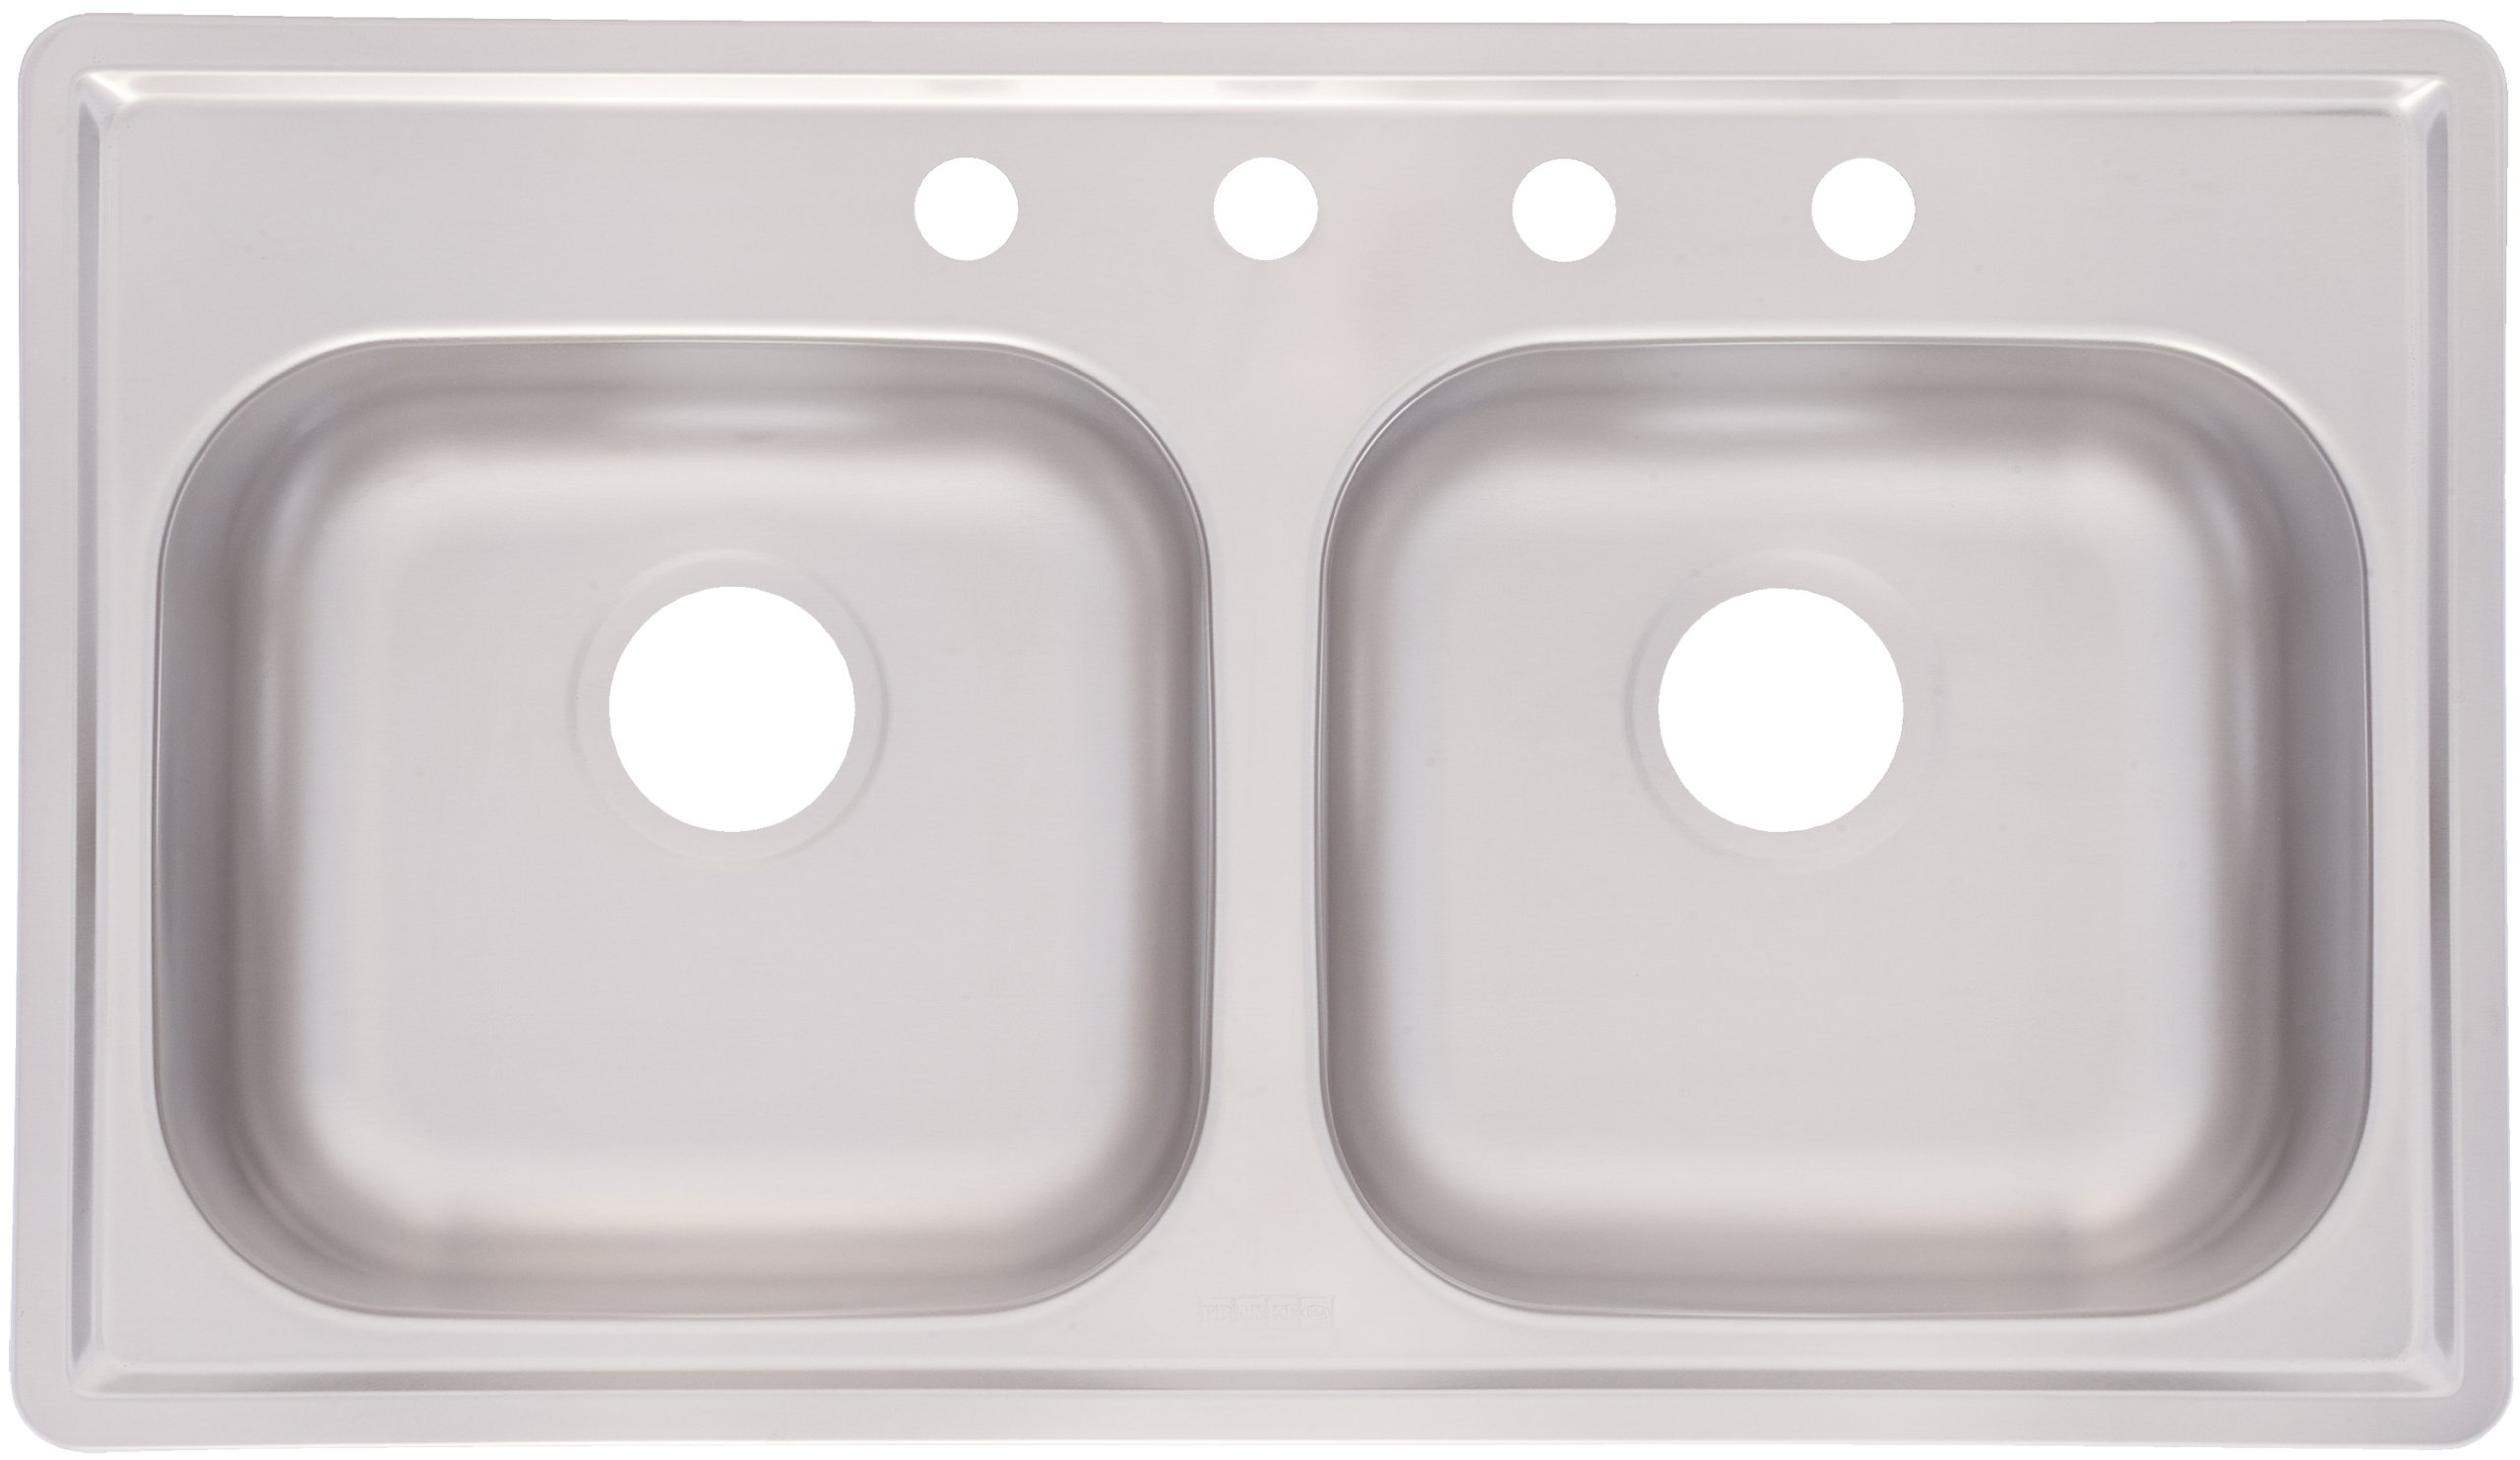 Kindred FMSB654NB Double Bowl Stainless Steel 33 x 19-Inch Top-mount Sink by Kindred